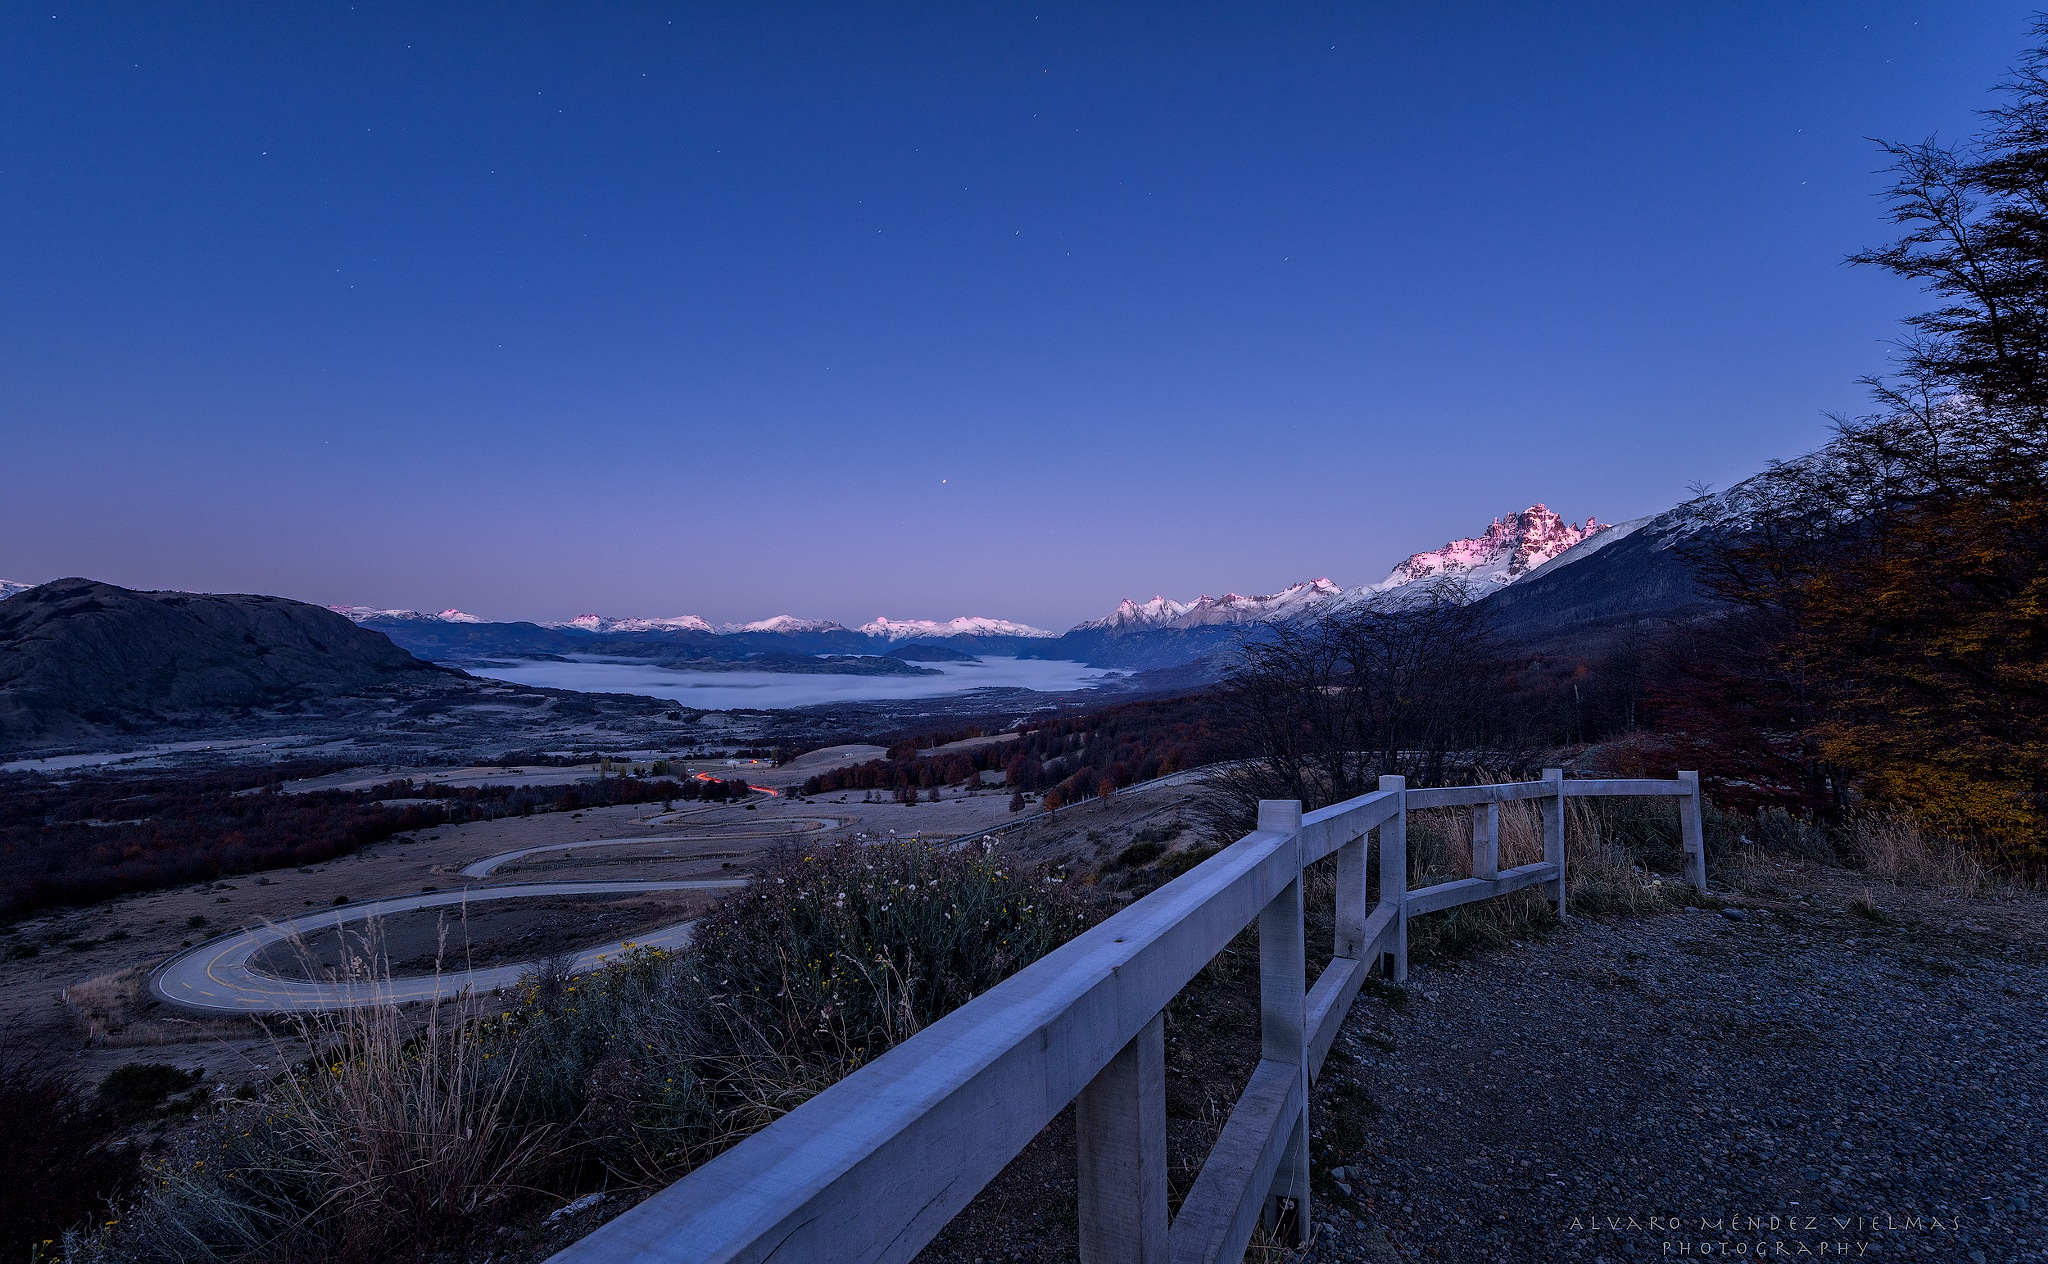 First lights of the day looking at Cerro Castillo by Álvaro Méndez Vielmas